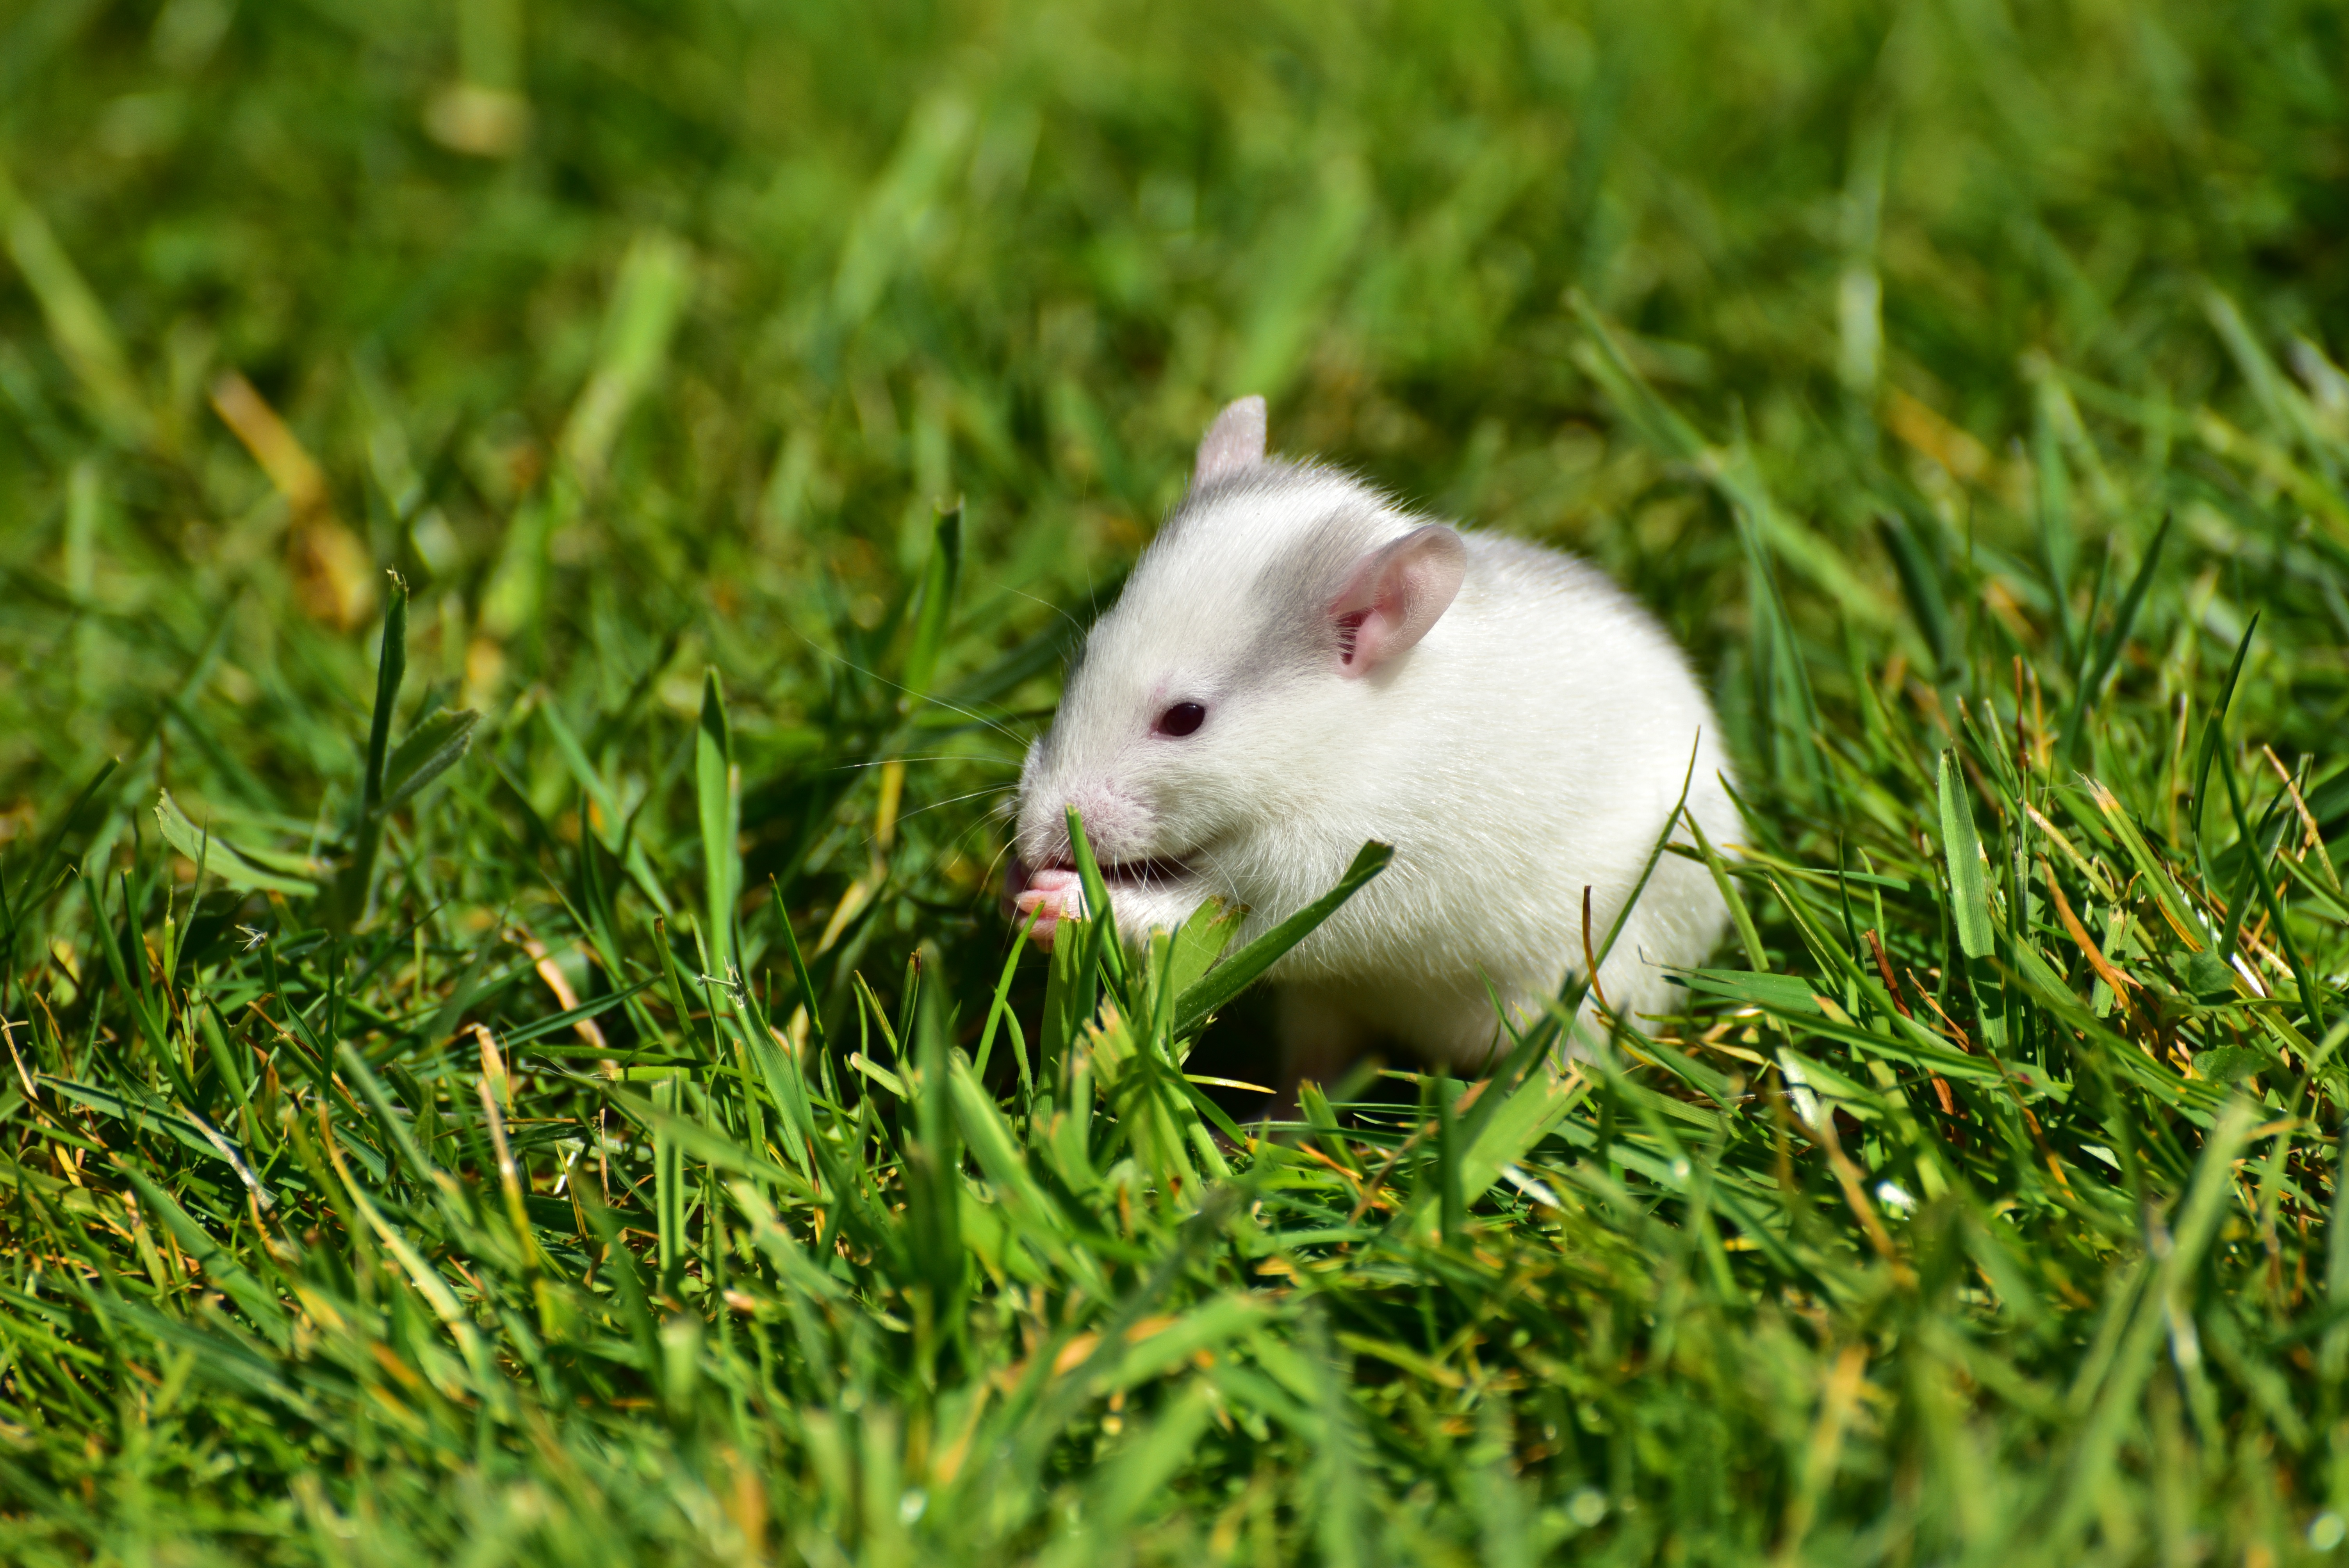 146060 download wallpaper Animals, Rat, Grass, Stroll, Rodent screensavers and pictures for free